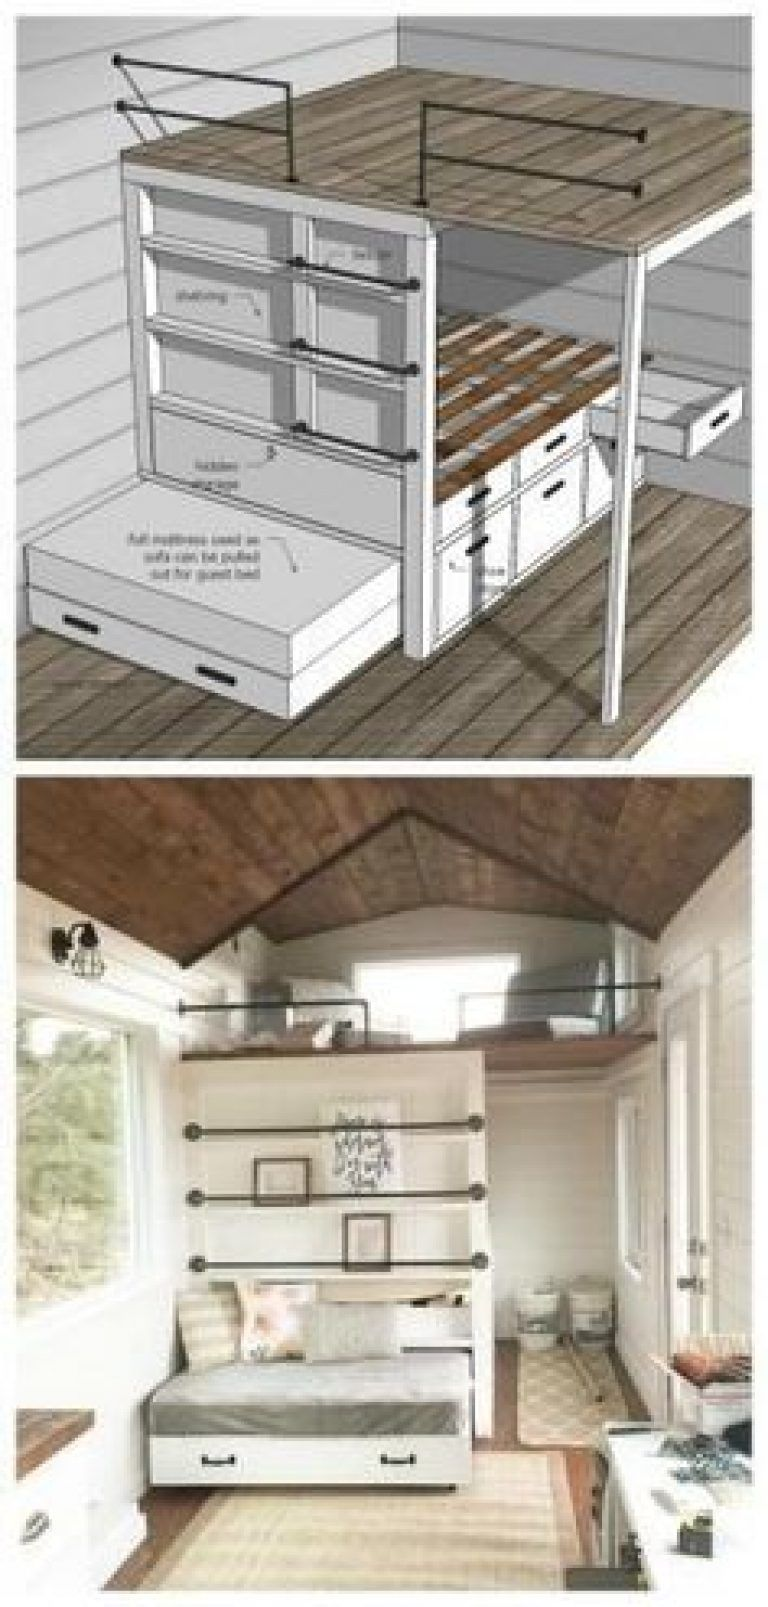 3 bedroom loft  Tiny House Loft with Bedroom Guest Bed Storage and Shelving